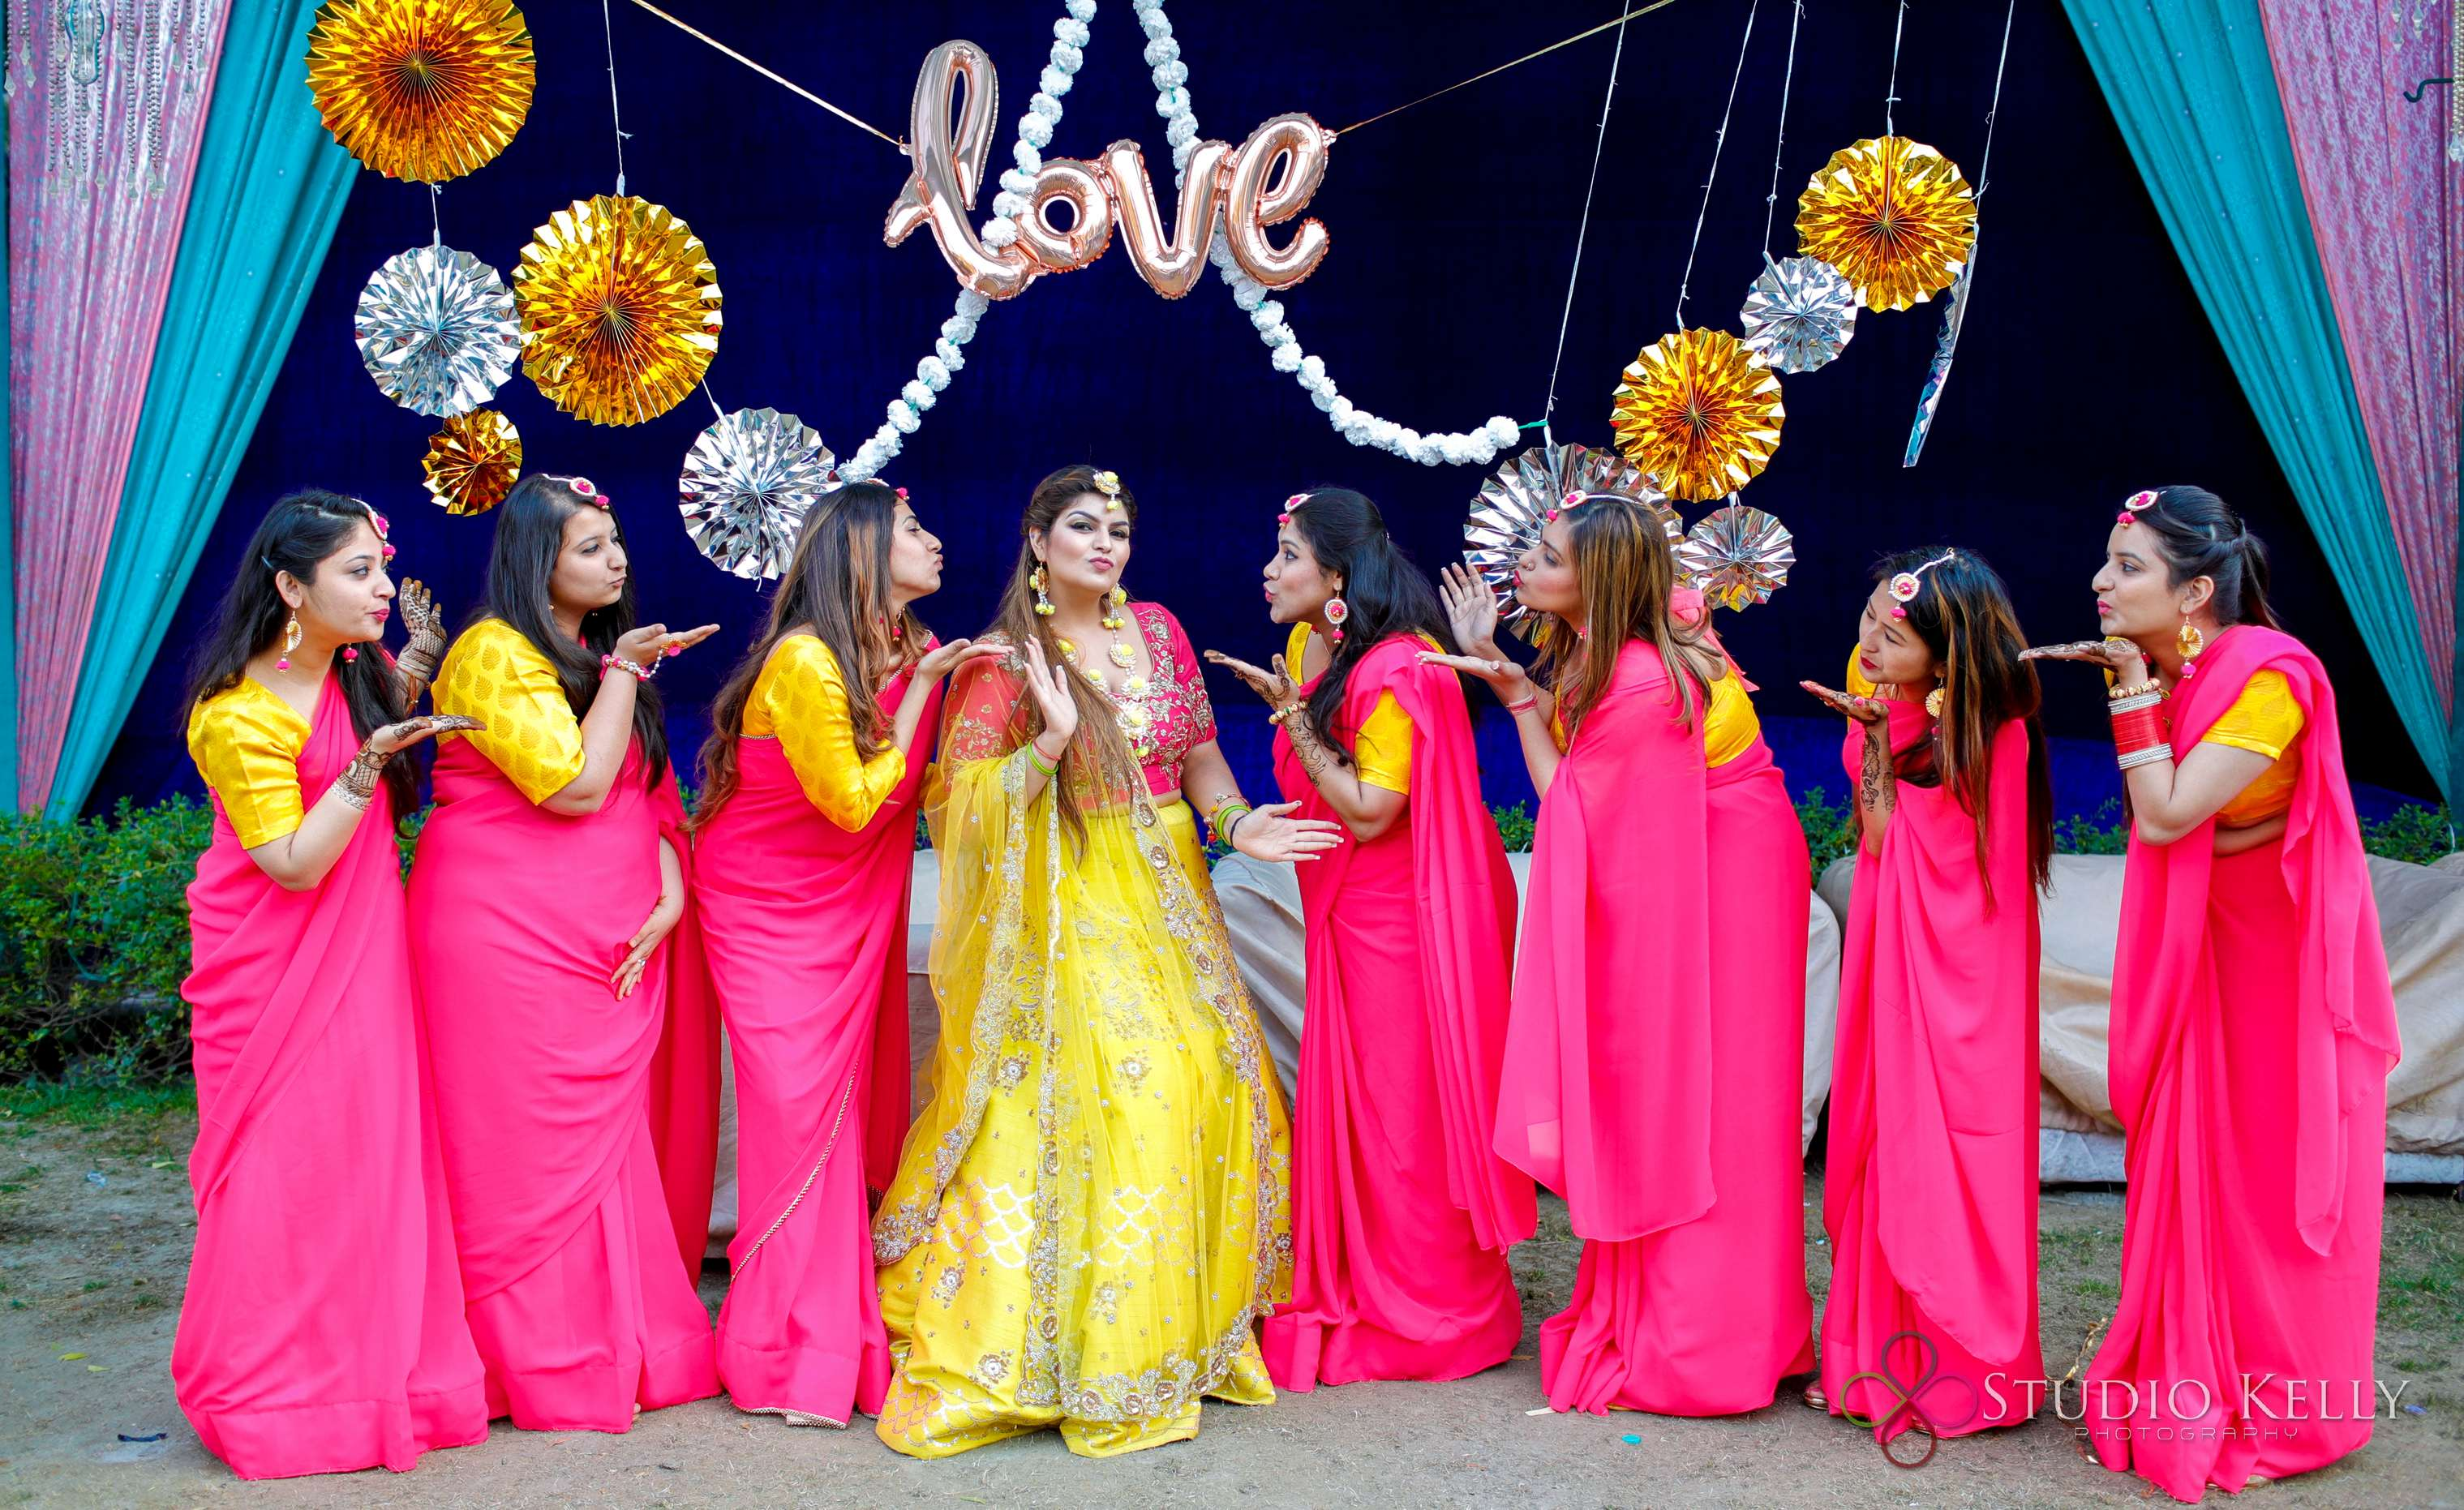 indian weddings | mehendi pictures | indian wedding pictures | Function Mania | Latest Mehendi Picture Ideas | bridesmaids ideas Quirky Pictures | Function Mania